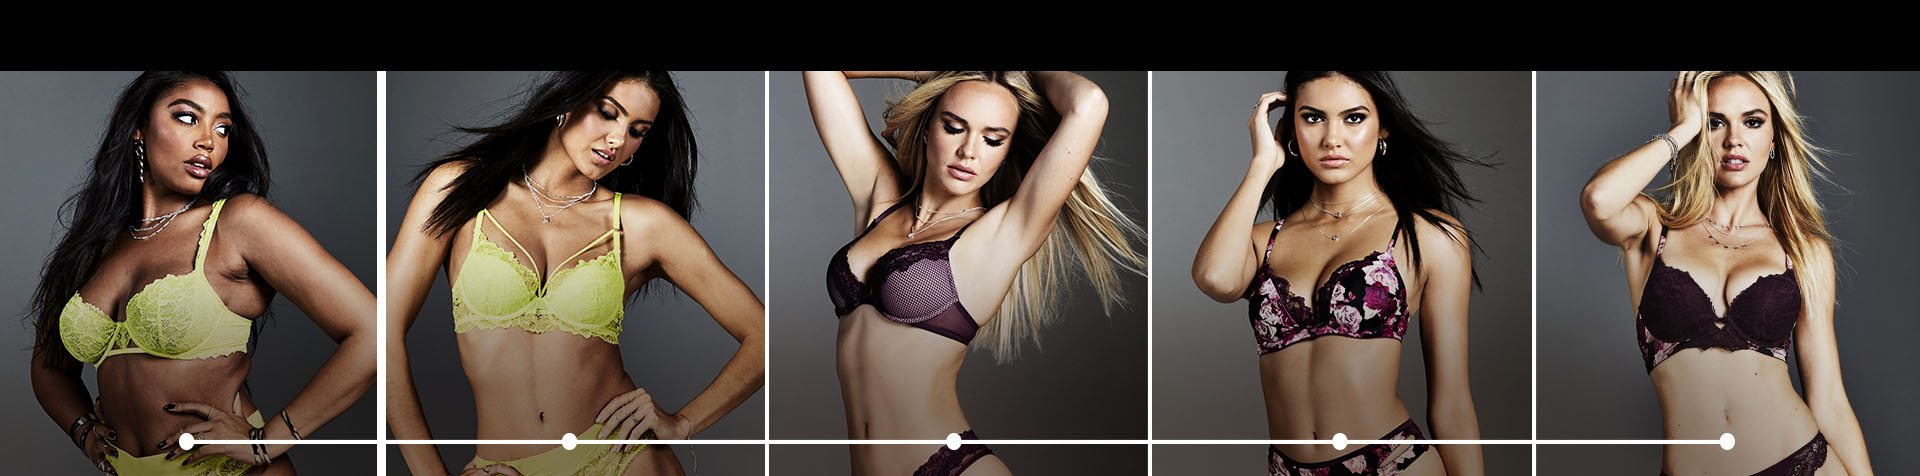 There are 5 models wearing La Senza bras. The first model is wearing a neon yellow unlined bra. The second model is wearing a neon yellow lightly lined bra. The third model is wearing a purple no wire bra. The fourth model is wearing a purple floral push up bra. The fifth model is wearing a purple extreme push up bra.